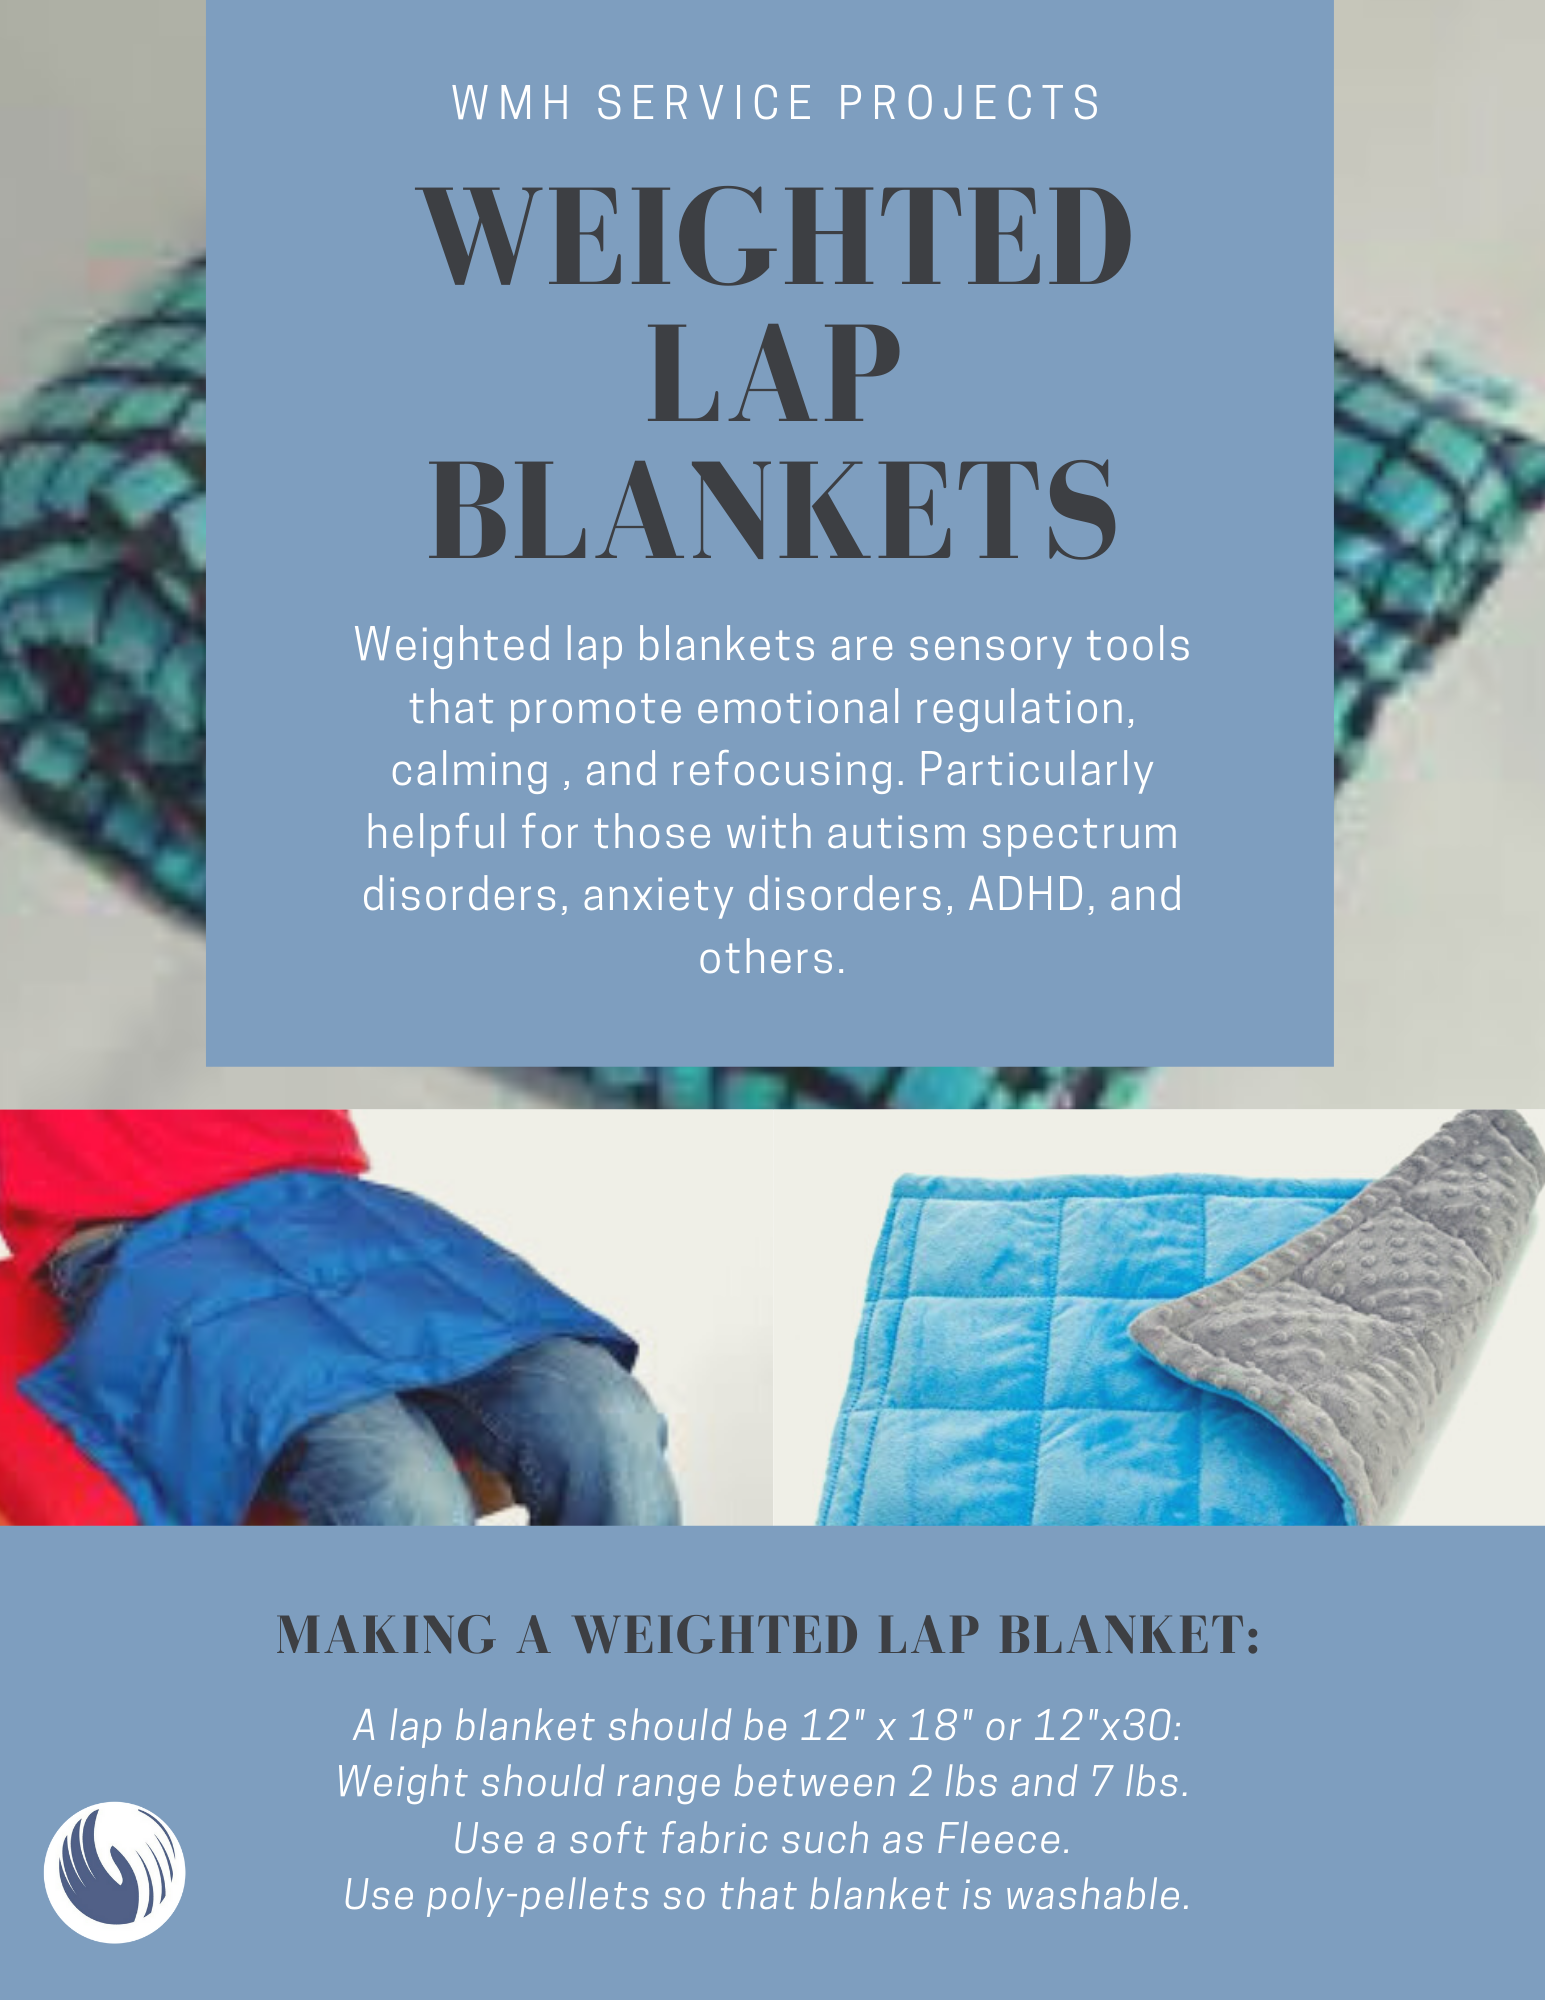 Weighted Lap Blanket project flyer